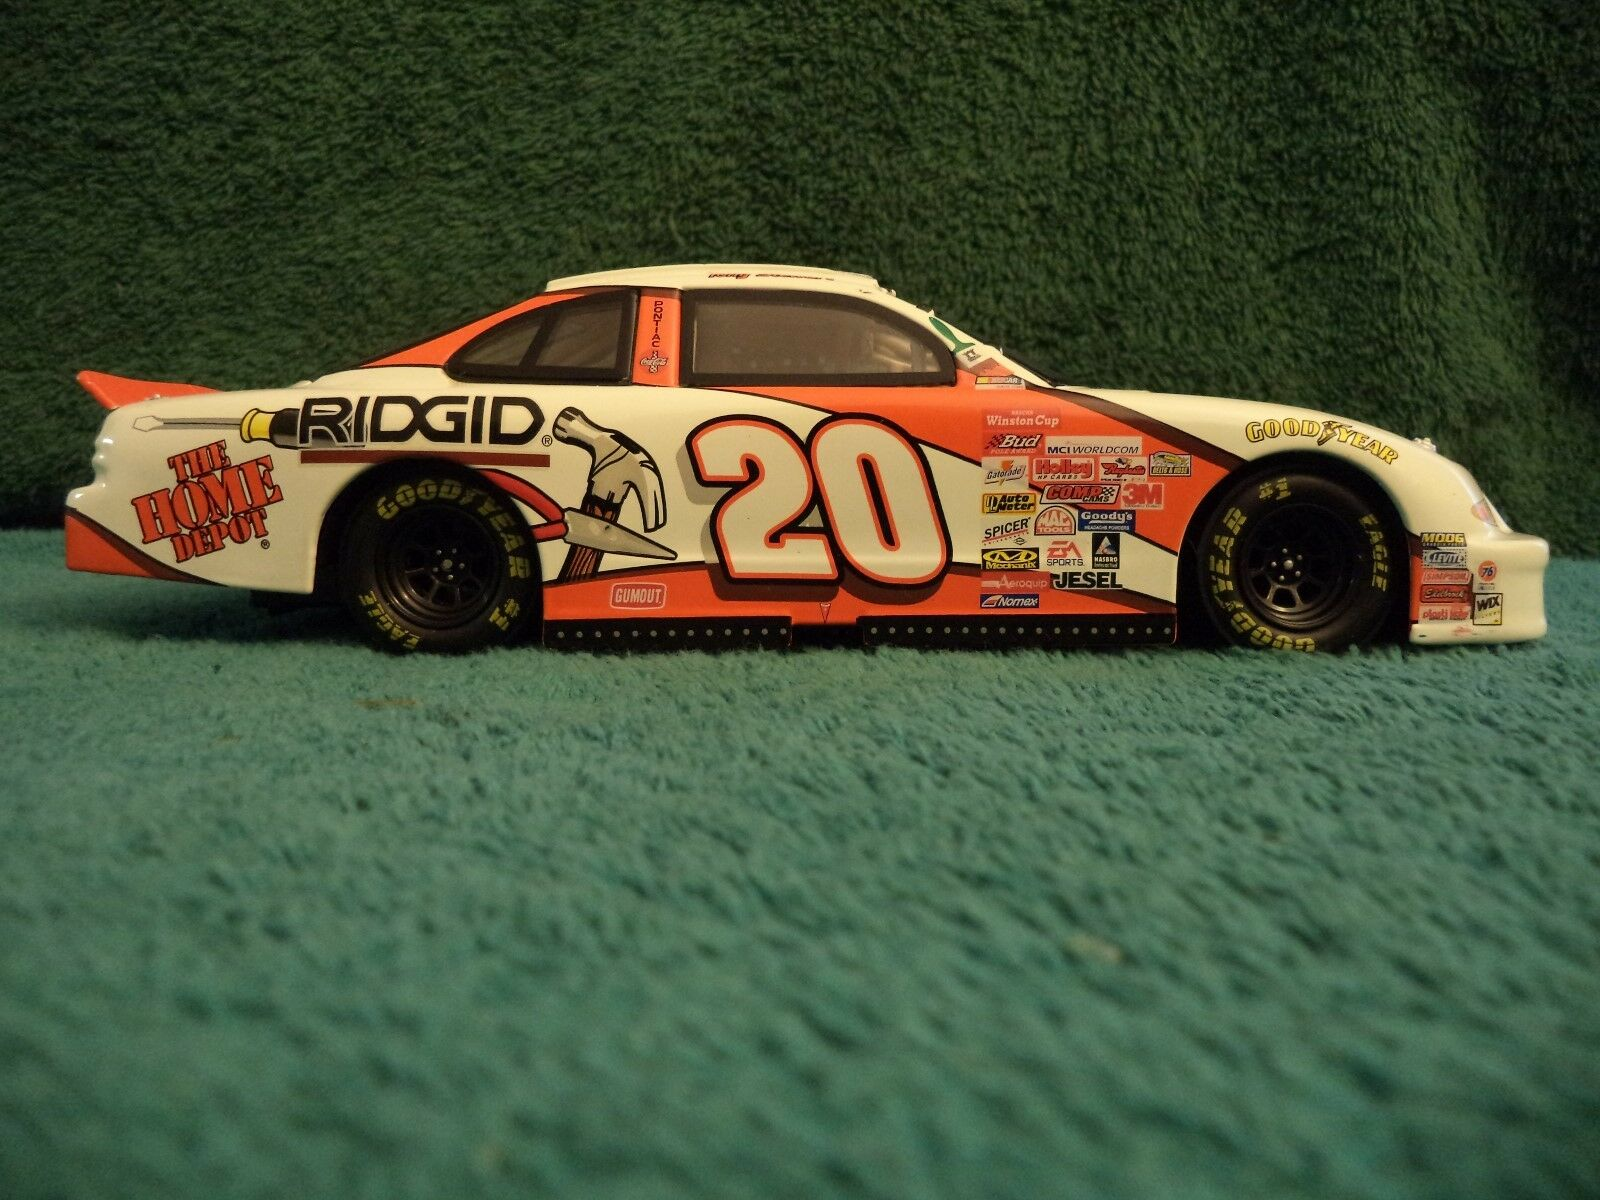 Tony Stewart Home Depot LIMITED EDITION Habitat for Humanity 1999 Pontiac